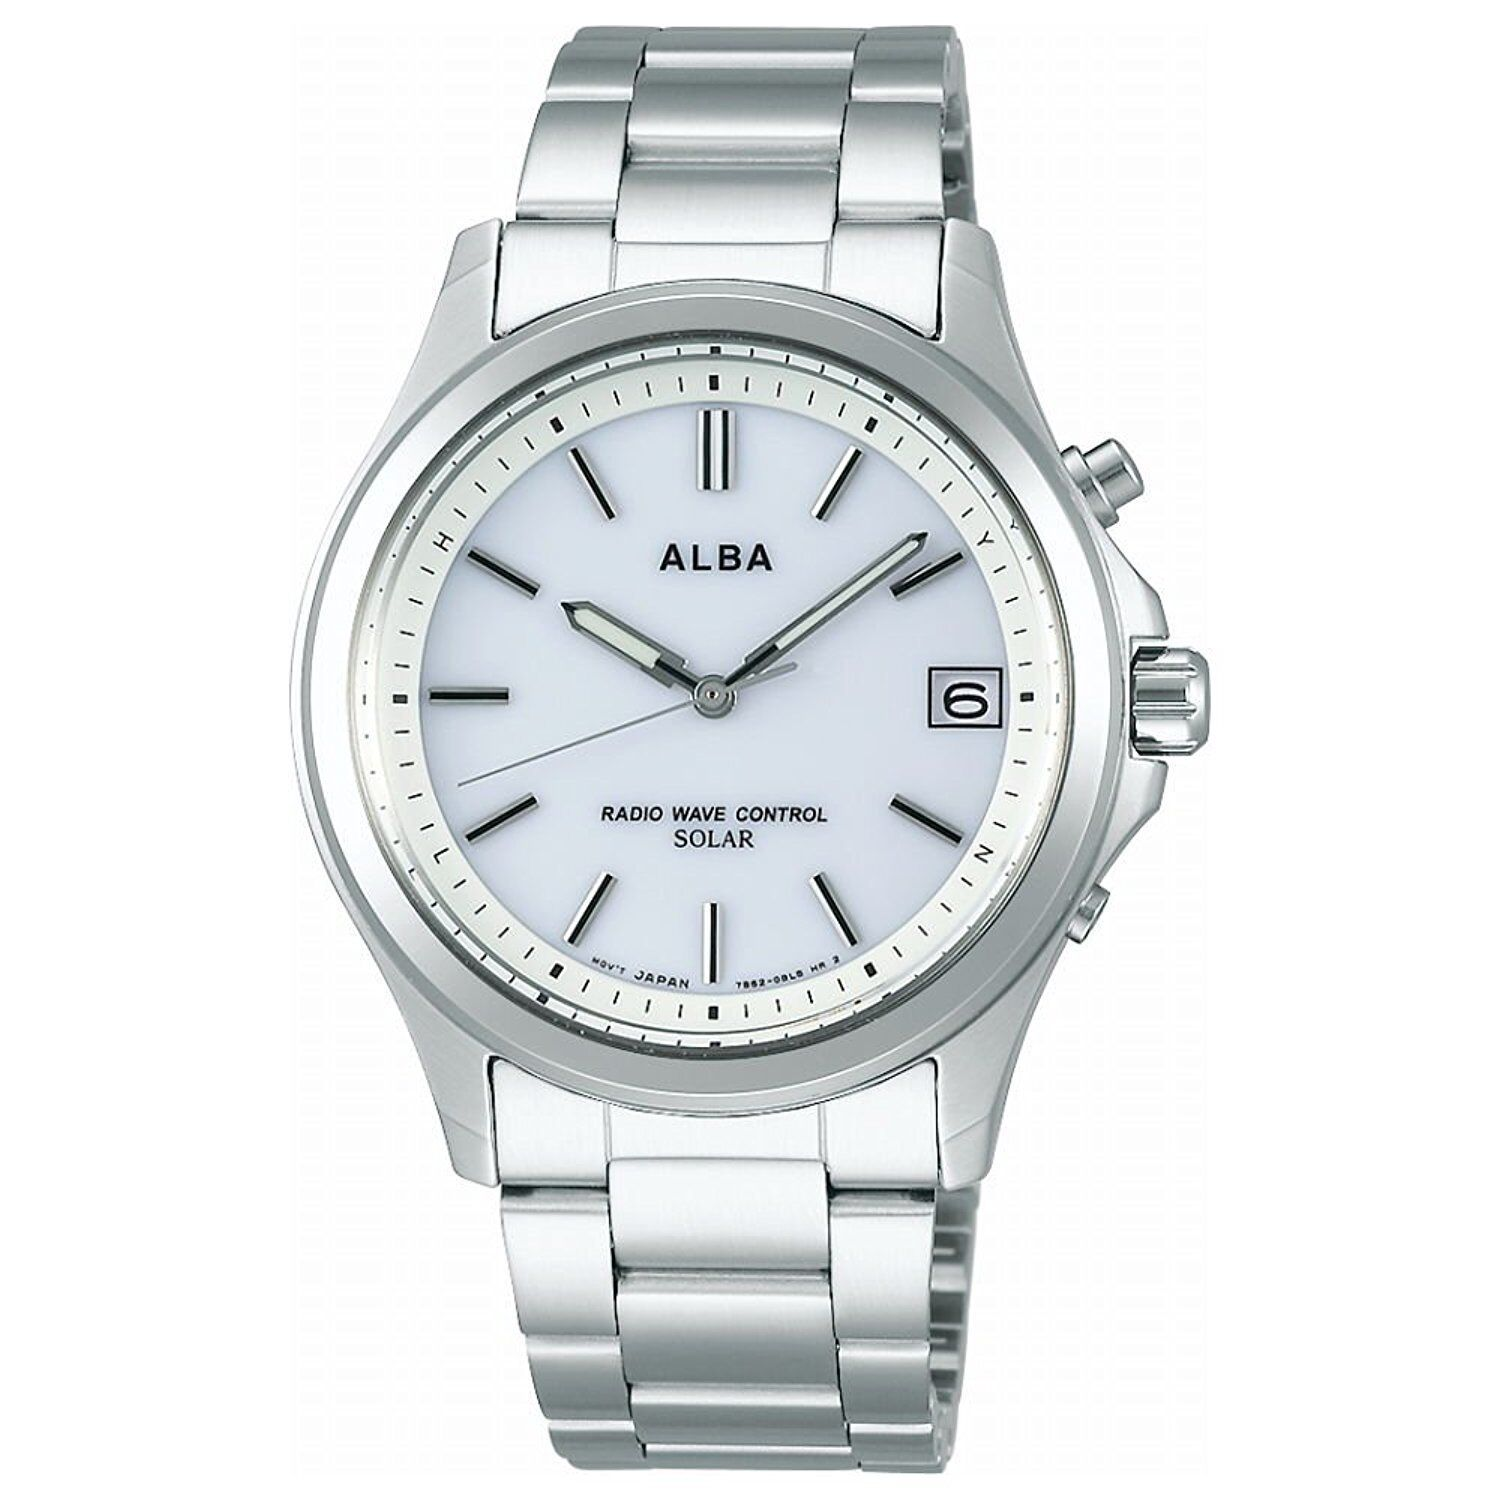 Seiko 2017 Alba Solar Radio Aefy504 Mens Watch Ebay Norton Secured Powered By Verisign